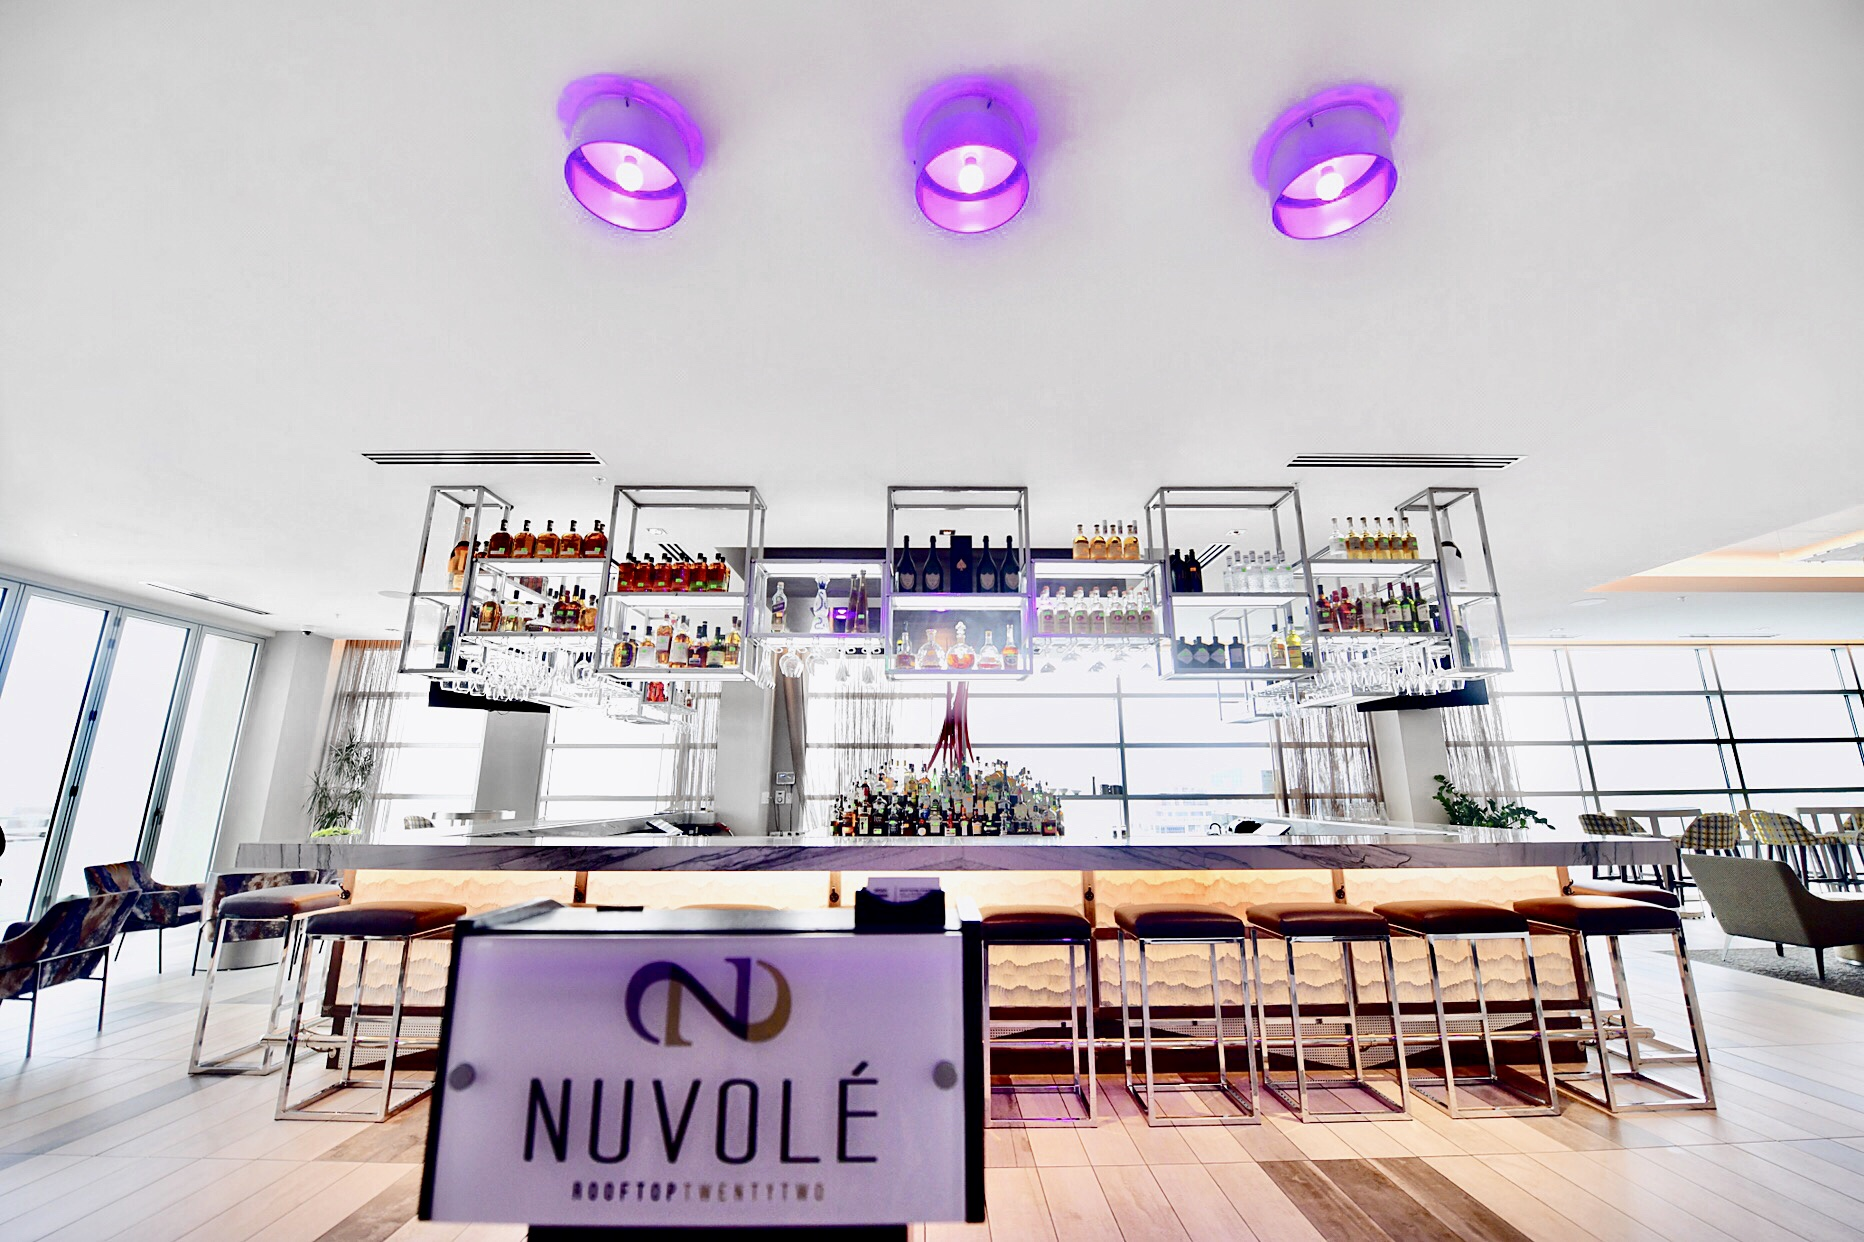 AC Hotel Charlotte, AC Hotel Marriott, Nuvole Rooftop Twenty two, Charlotte rooftop bar,